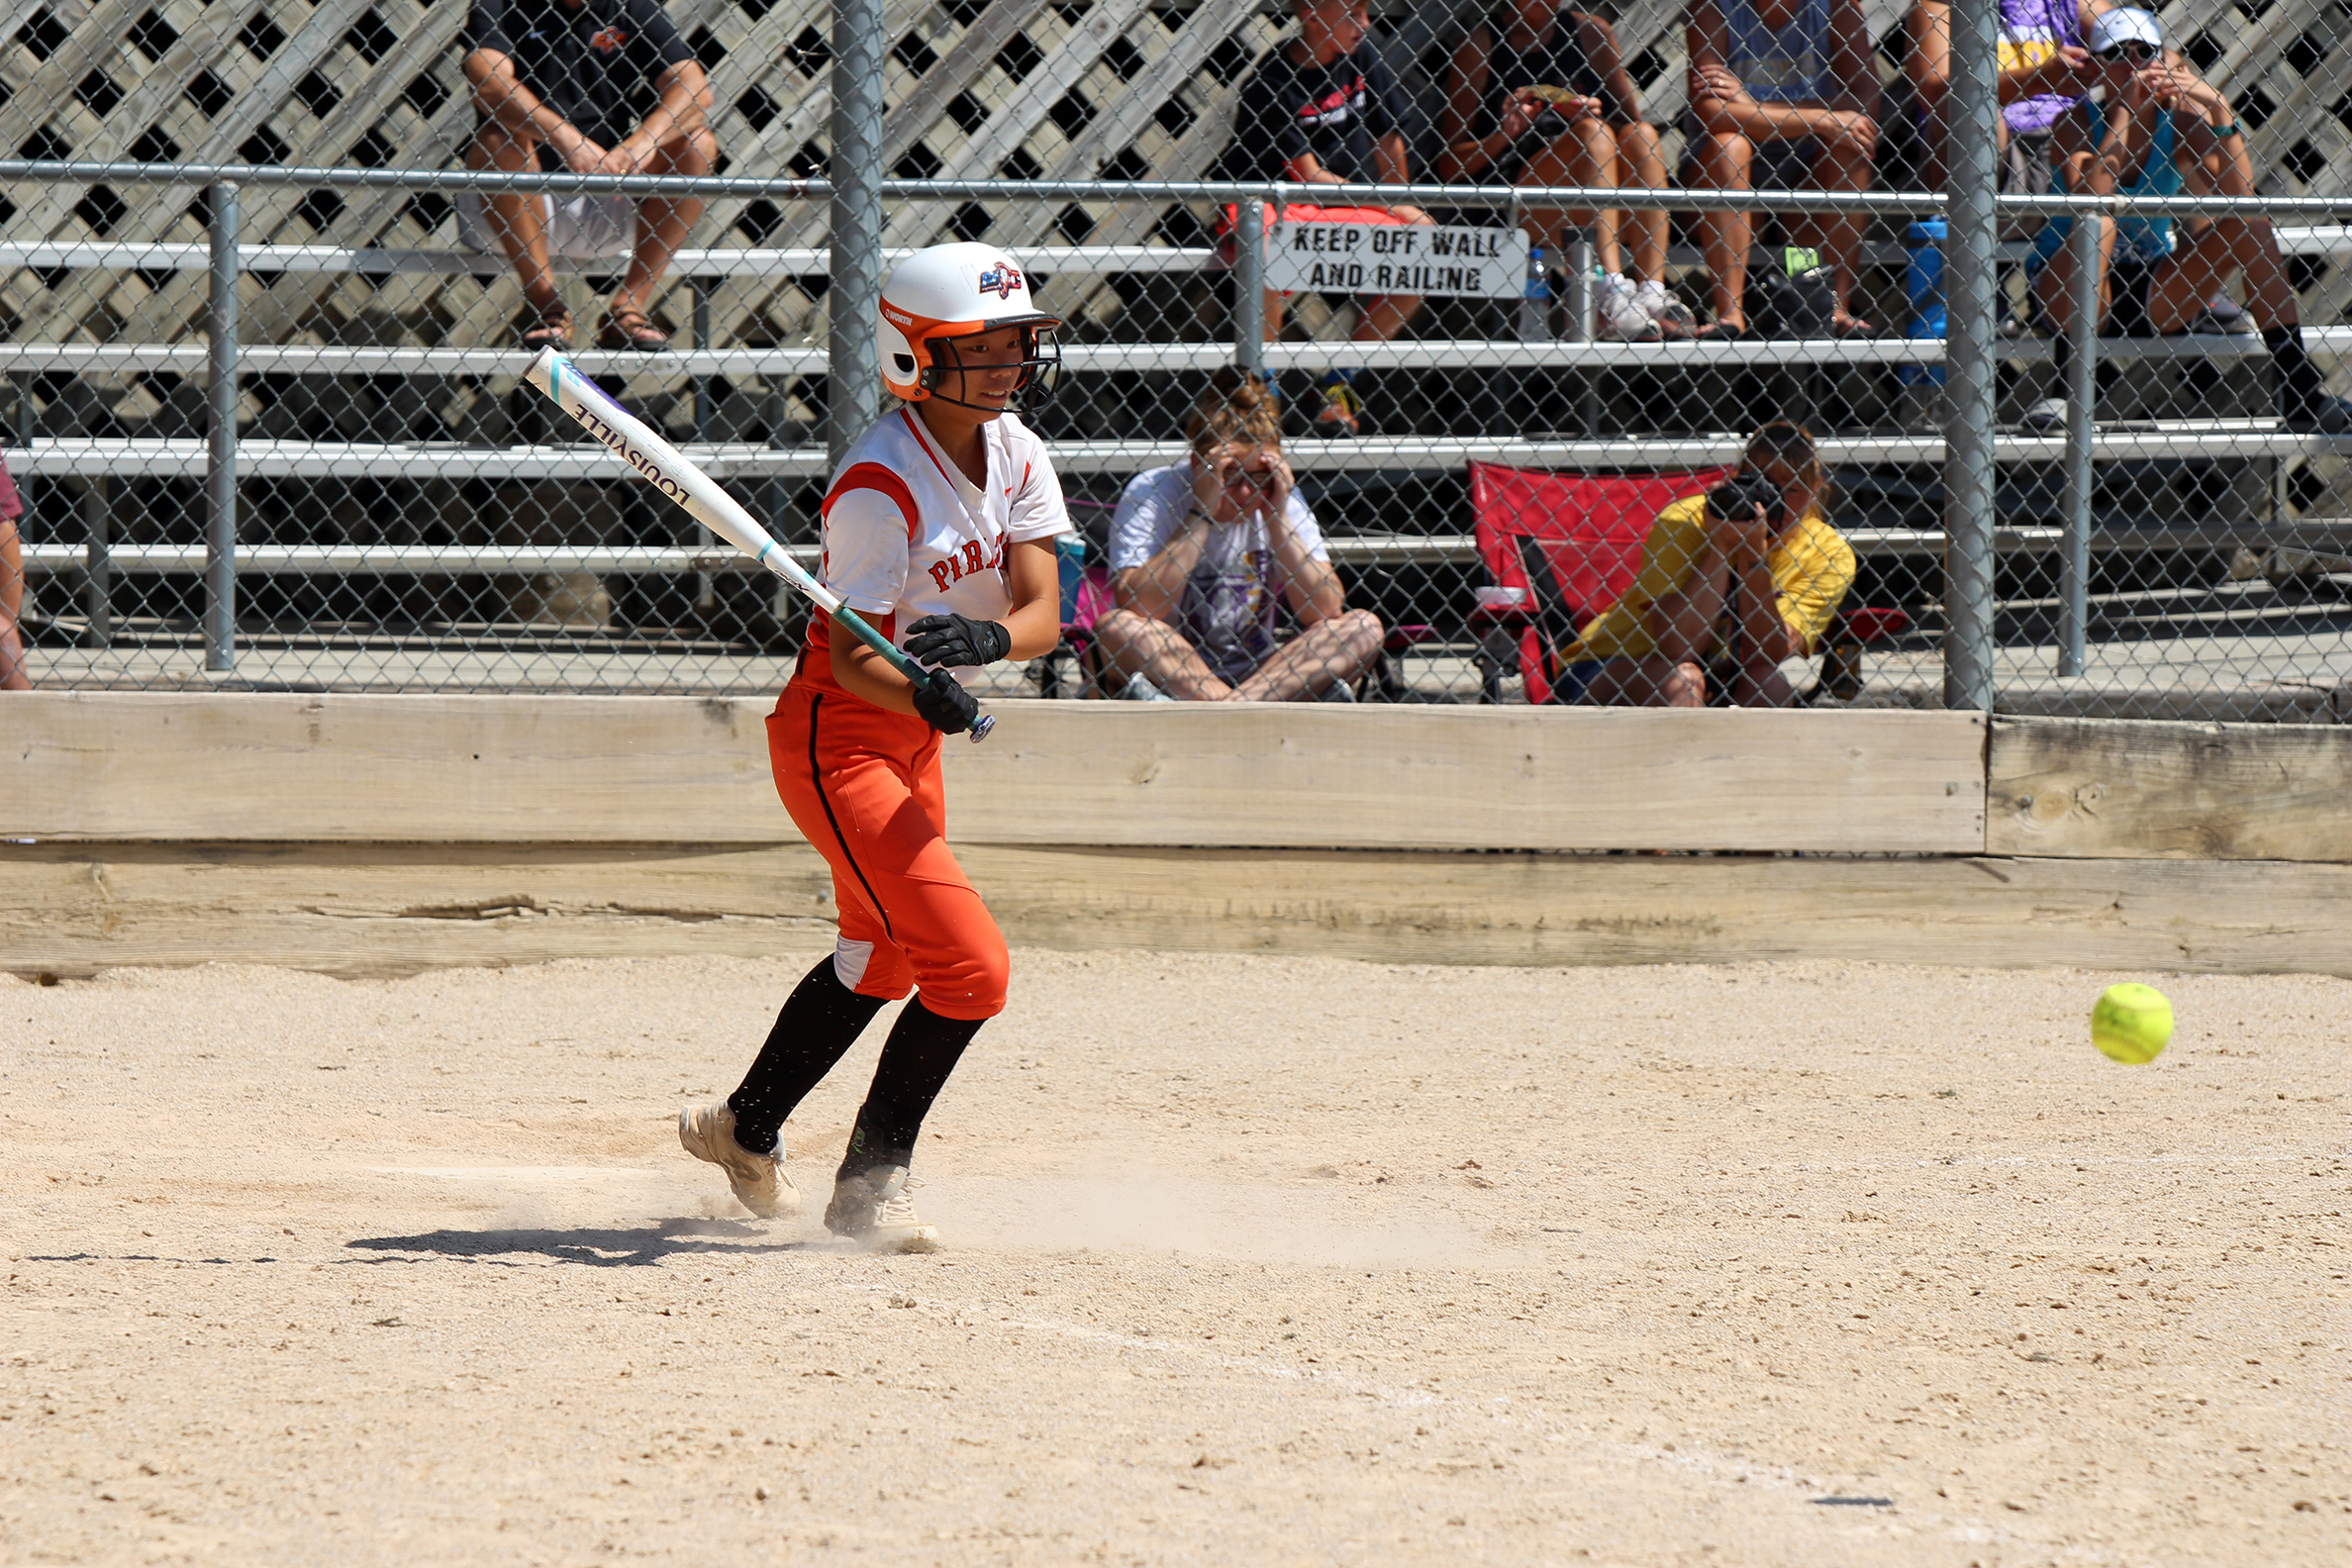 Platte County's Stephanie Carroll hits a grounder against Pleasant Hill on Saturday, Aug. 25 at the Greater Kansas City Softball Tournament in Independence, Mo.